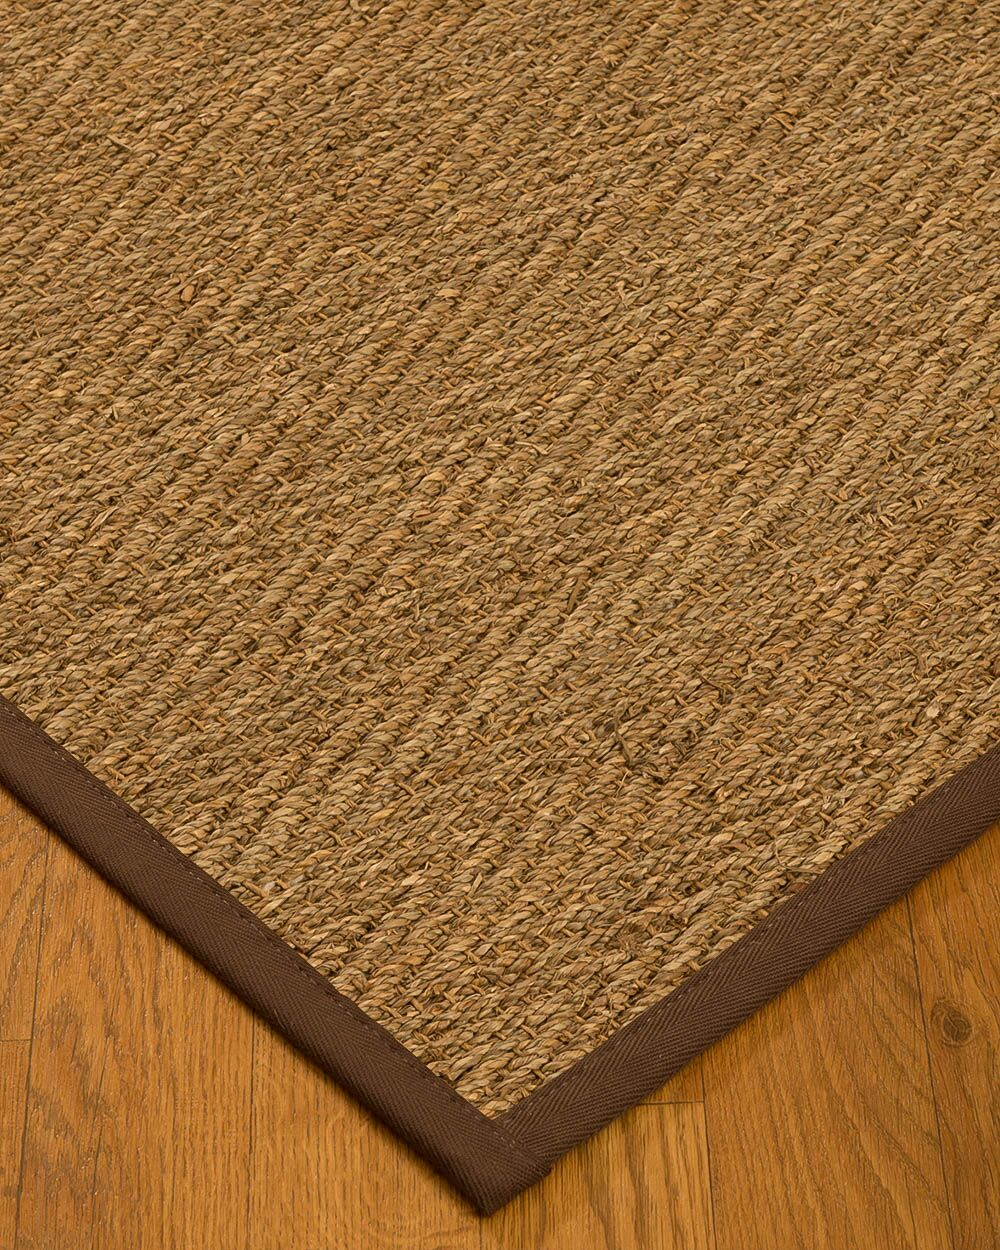 Chavarria Border Hand-Woven Beige/Brown Area Rug Rug Size: Rectangle 5' x 8', Rug Pad Included: Yes